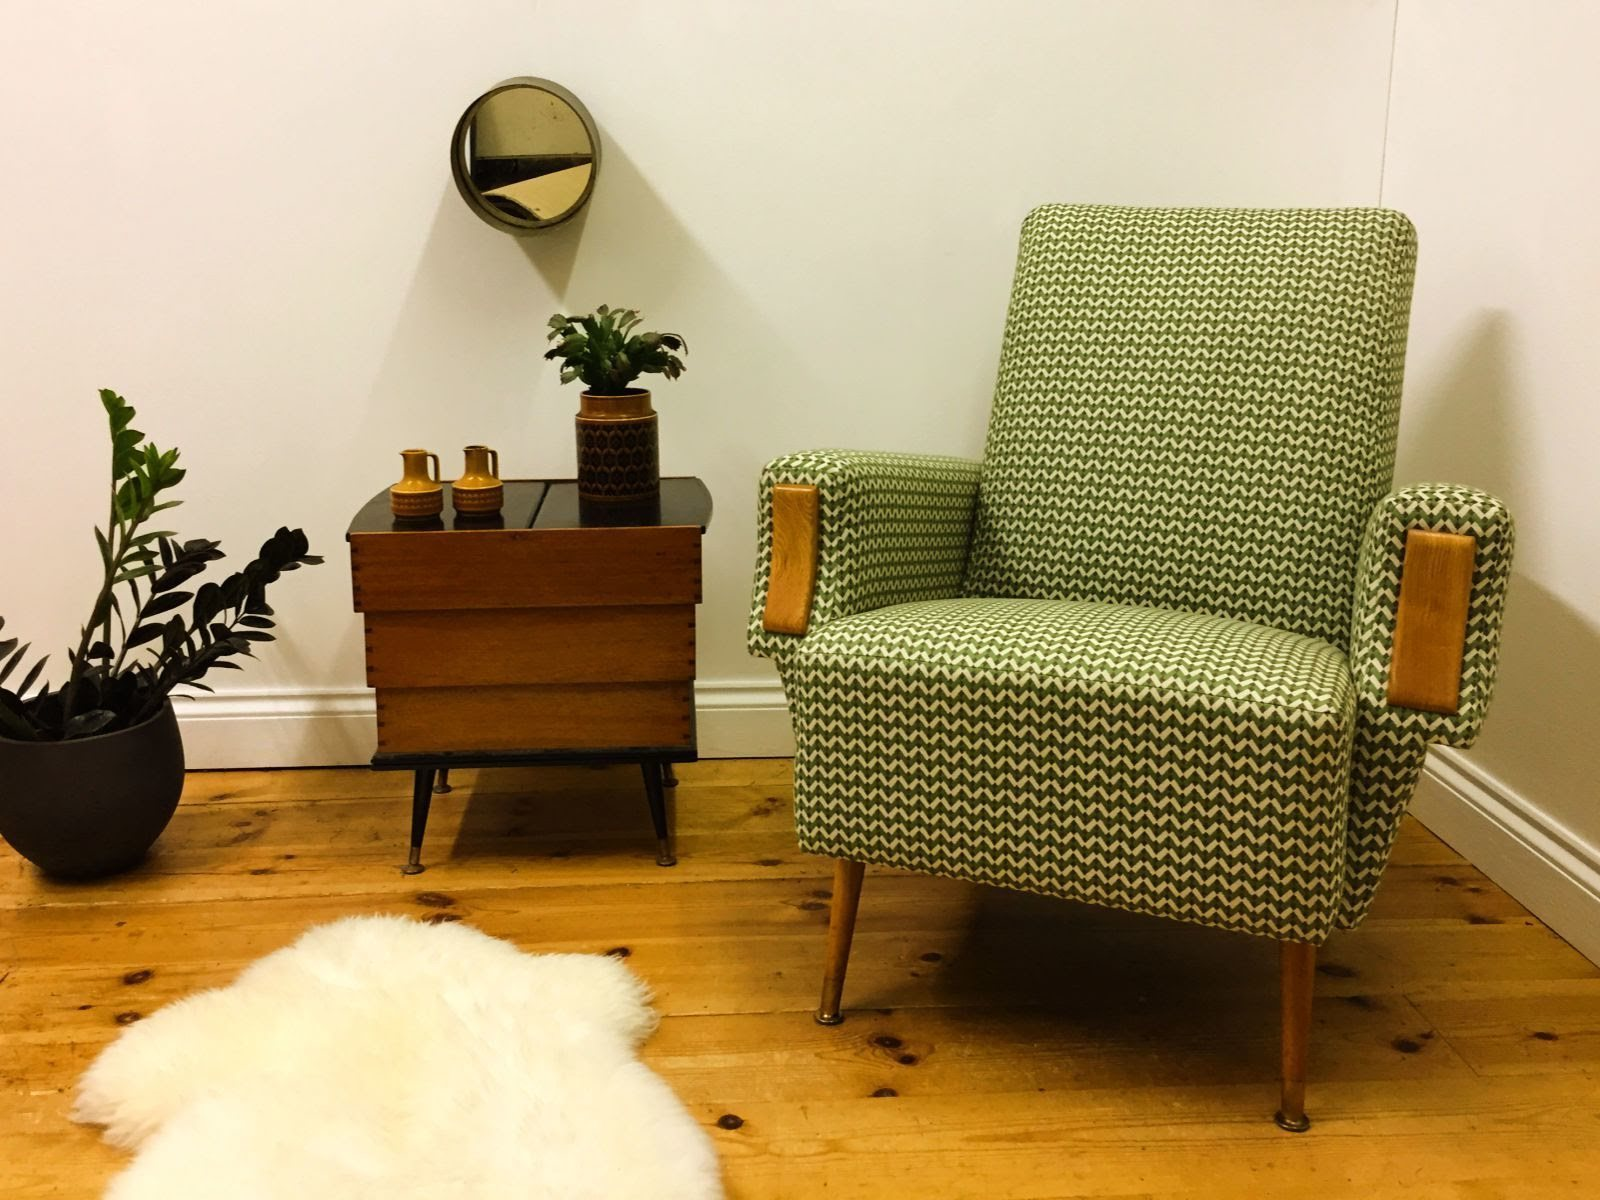 Picture of: Scandinavian Vintage Mid Century Modern Armchair With Striking Geometric Upholstery And Unusual Ash Arm Facings Unknown But Of Scandinavian Origin Vinterior